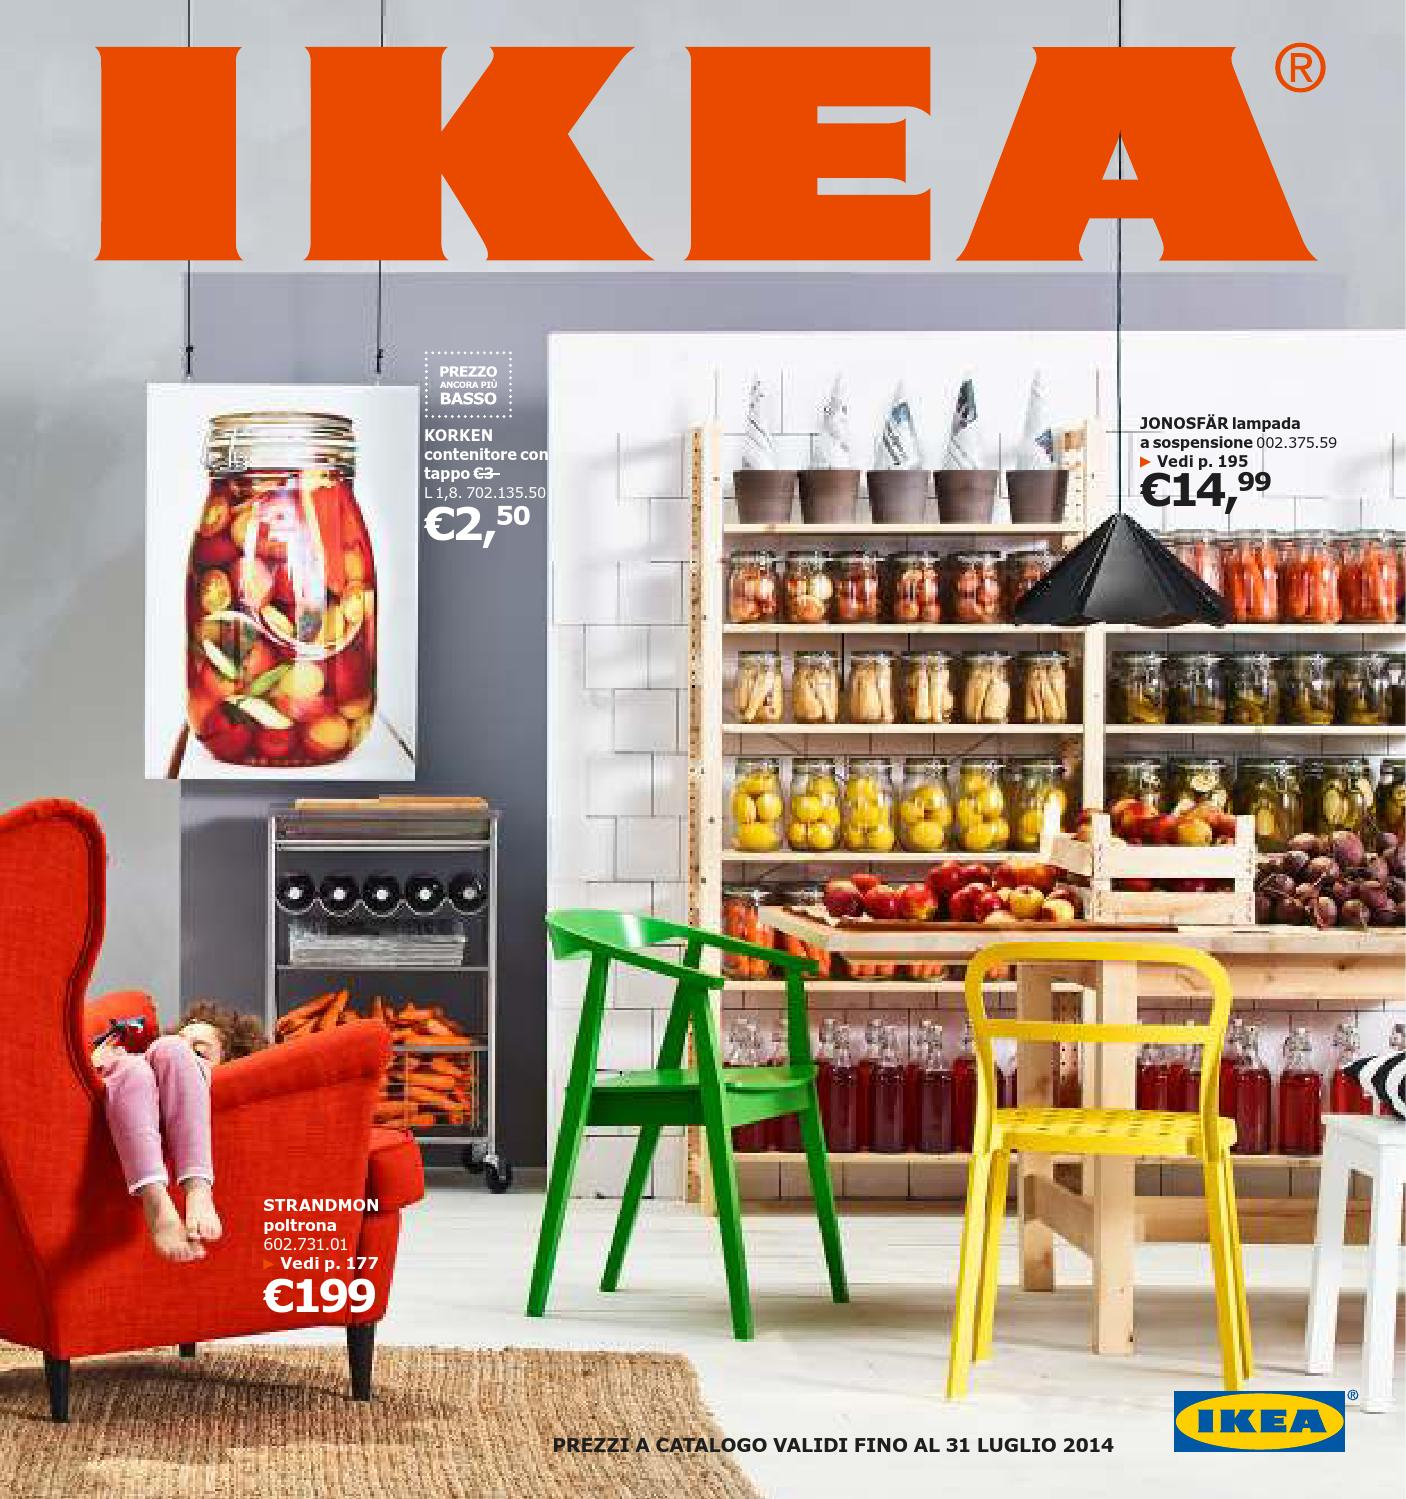 Ikea italia catalogo 2013 2014 by issuu